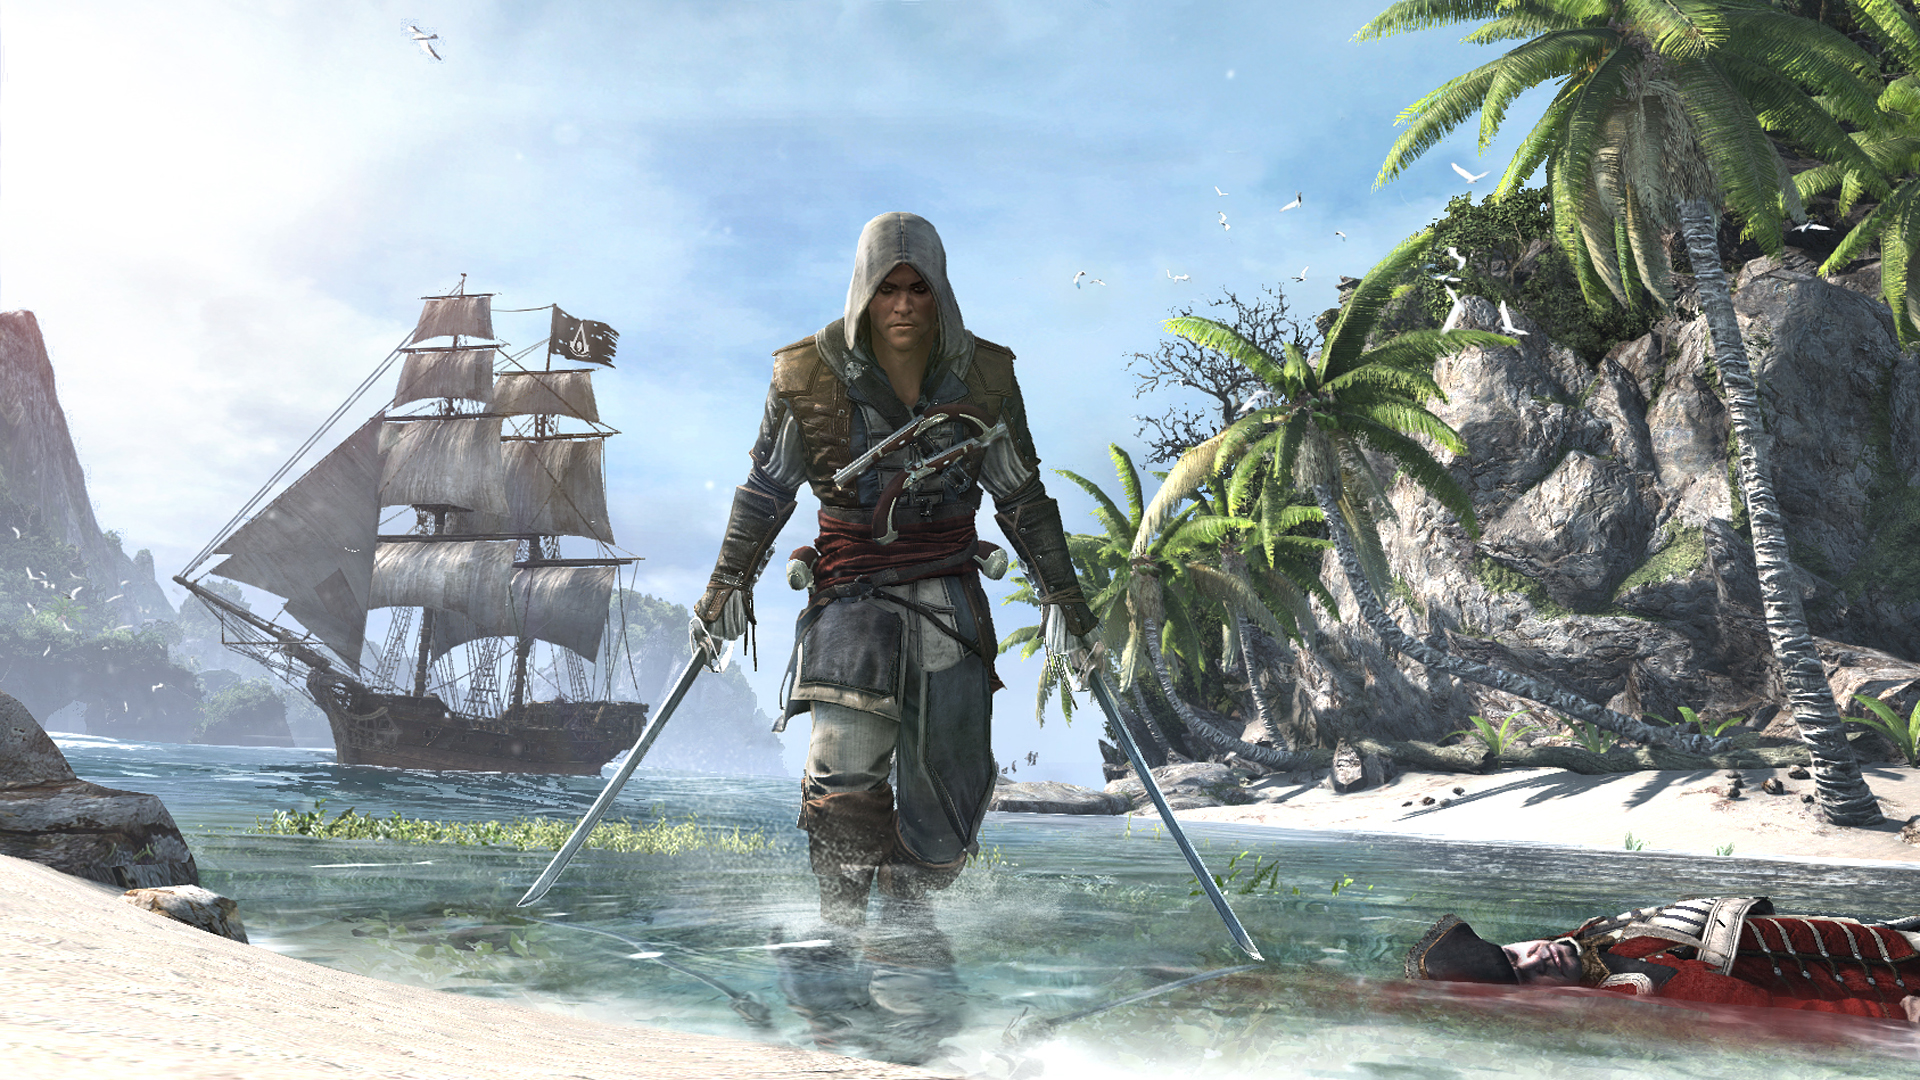 Download The Assassin s Creed IV Black Flag Wallpapers GeForce Assassins creed 4 black flag pictures